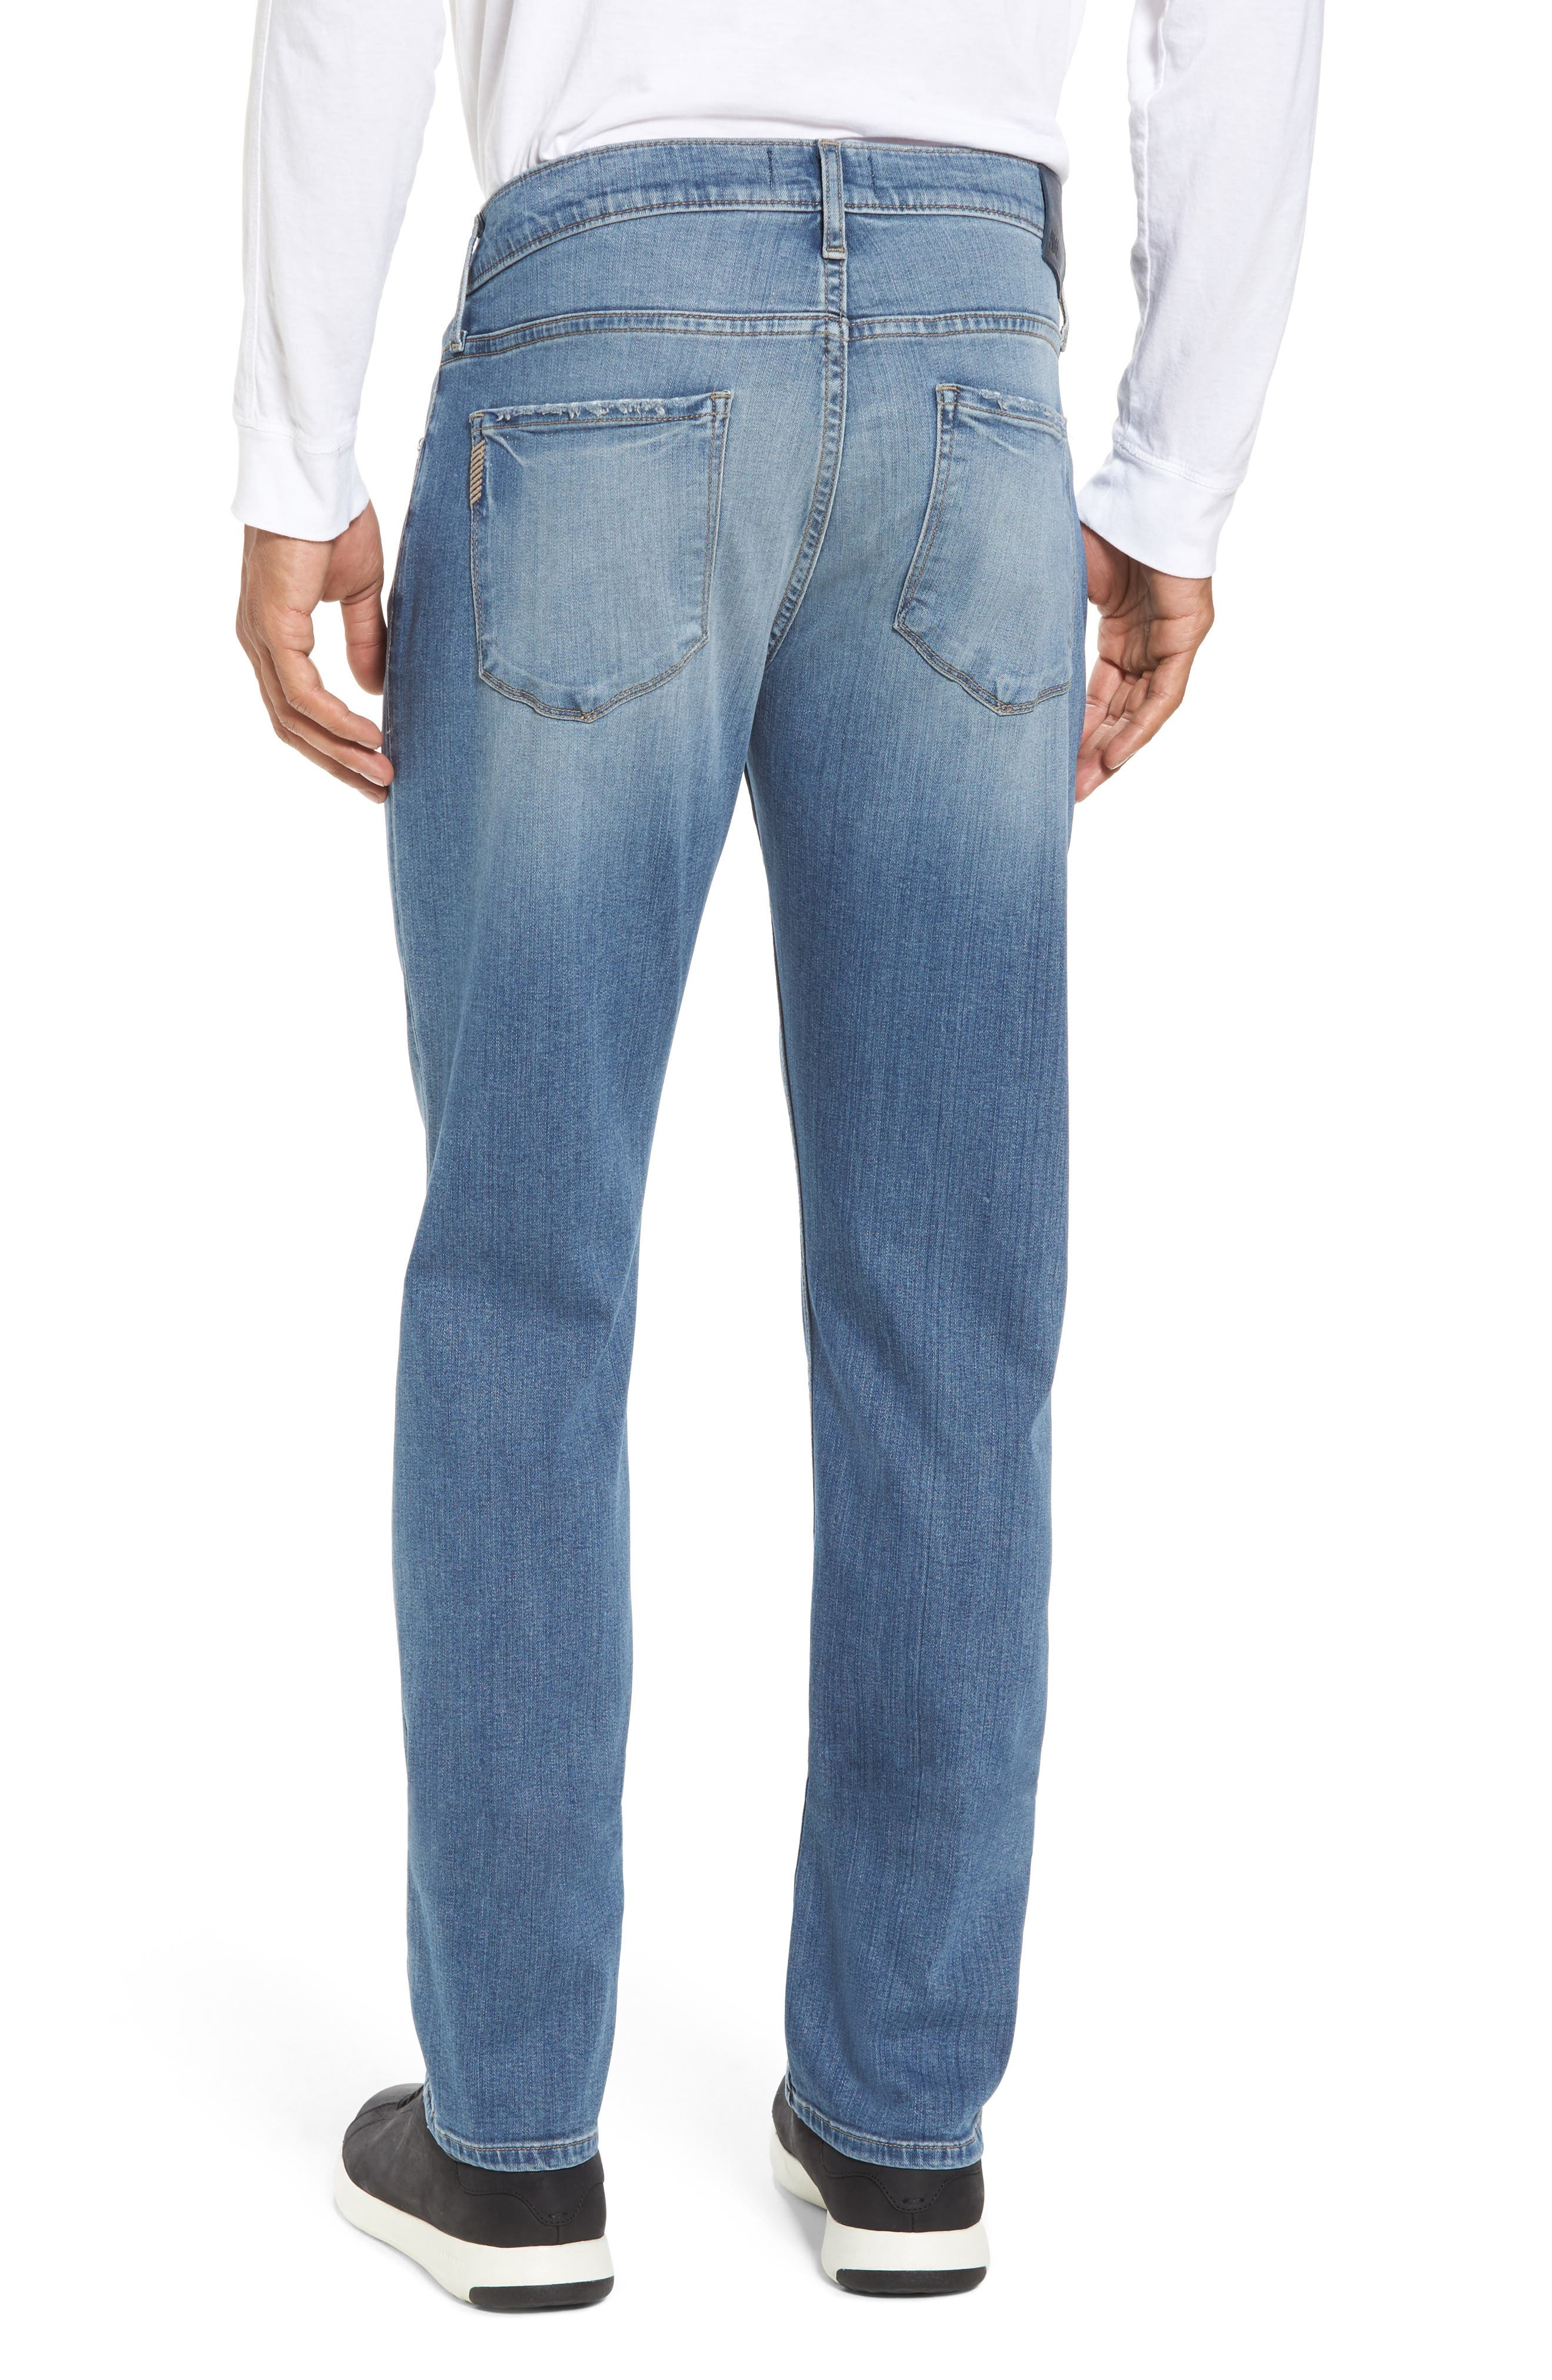 Transcend - Federal Slim Straight Fit Jeans,                             Alternate thumbnail 2, color,                             400